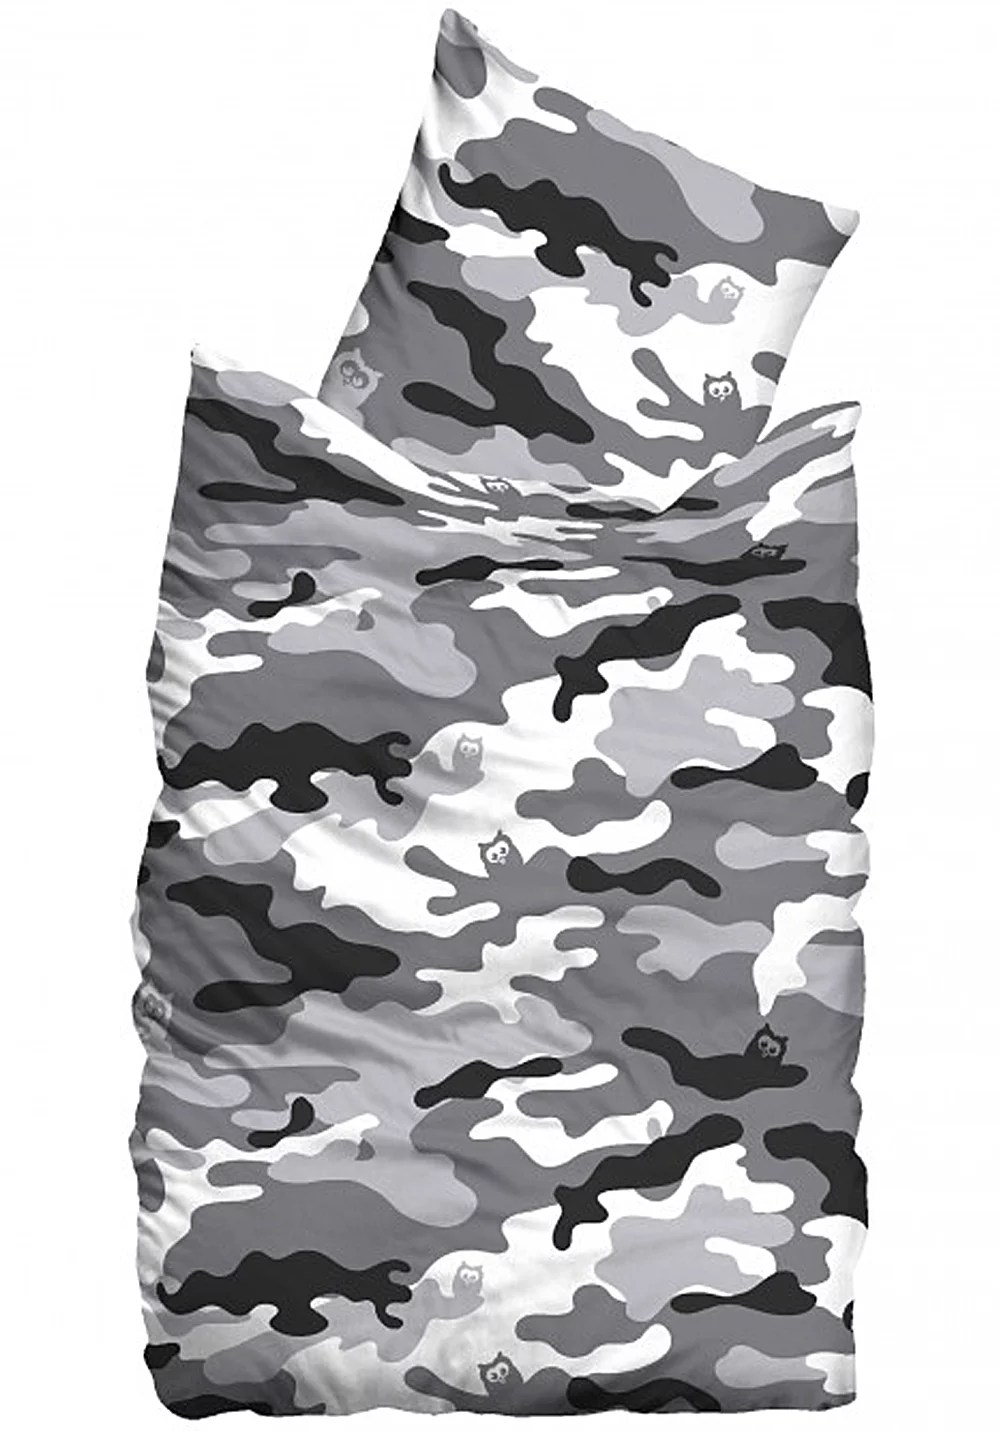 Camouflage Bettwäsche Suenos Missing In Action Snow Bedding Set 135x200 80x80cm Bettwäsche Camouflage